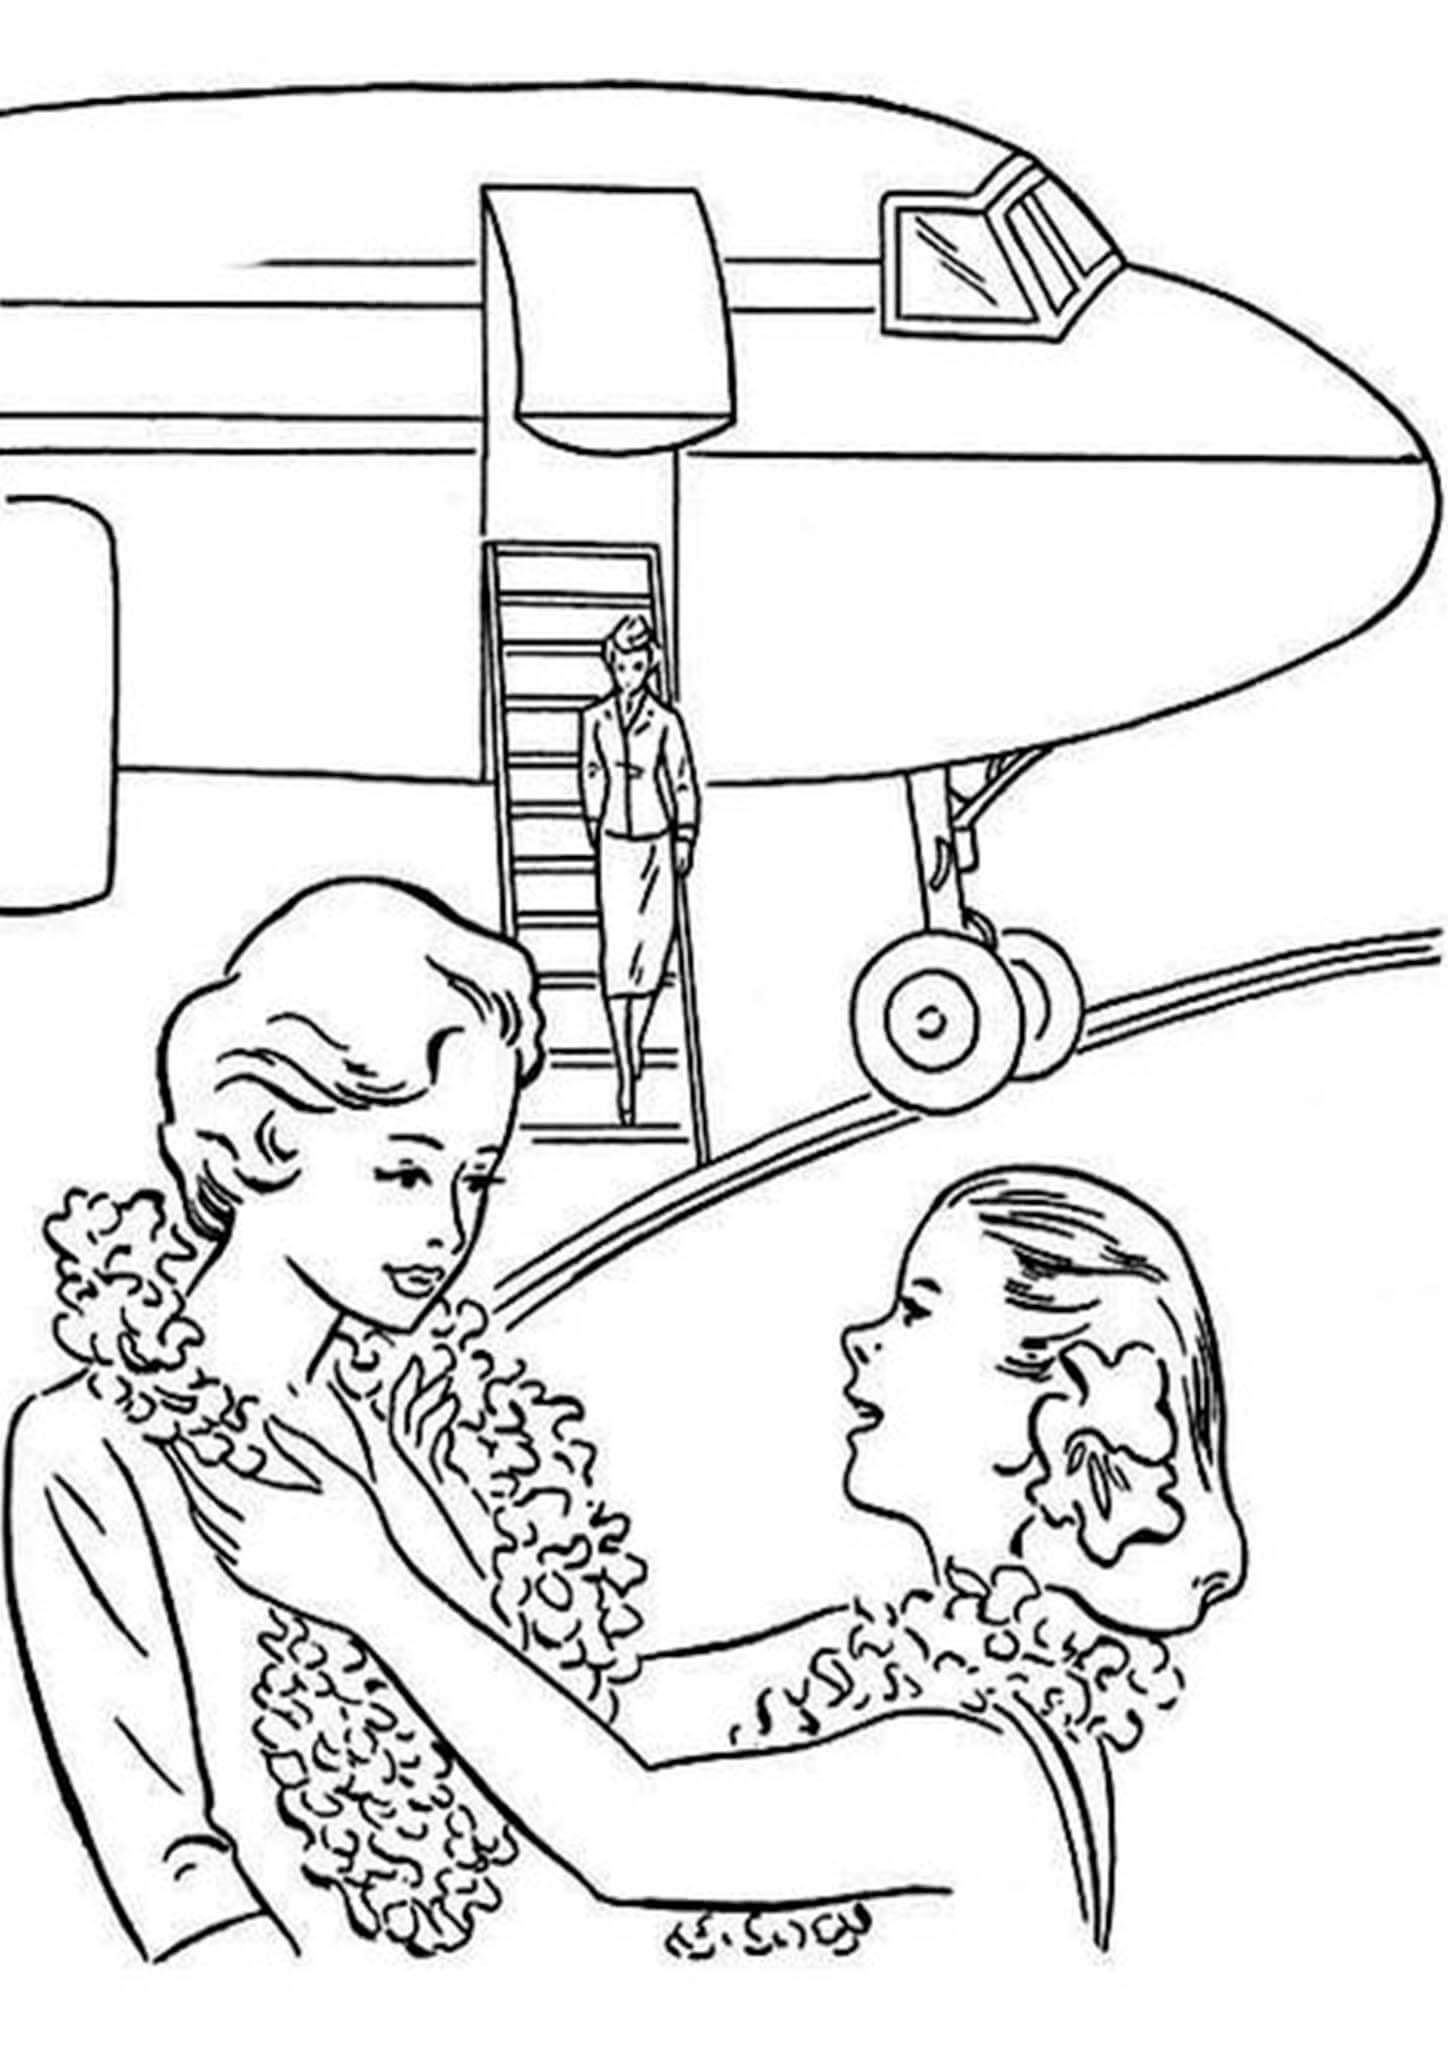 Free Easy To Print Airplane Coloring Pages Airplane Coloring Pages Coloring Pages Cars Coloring Pages